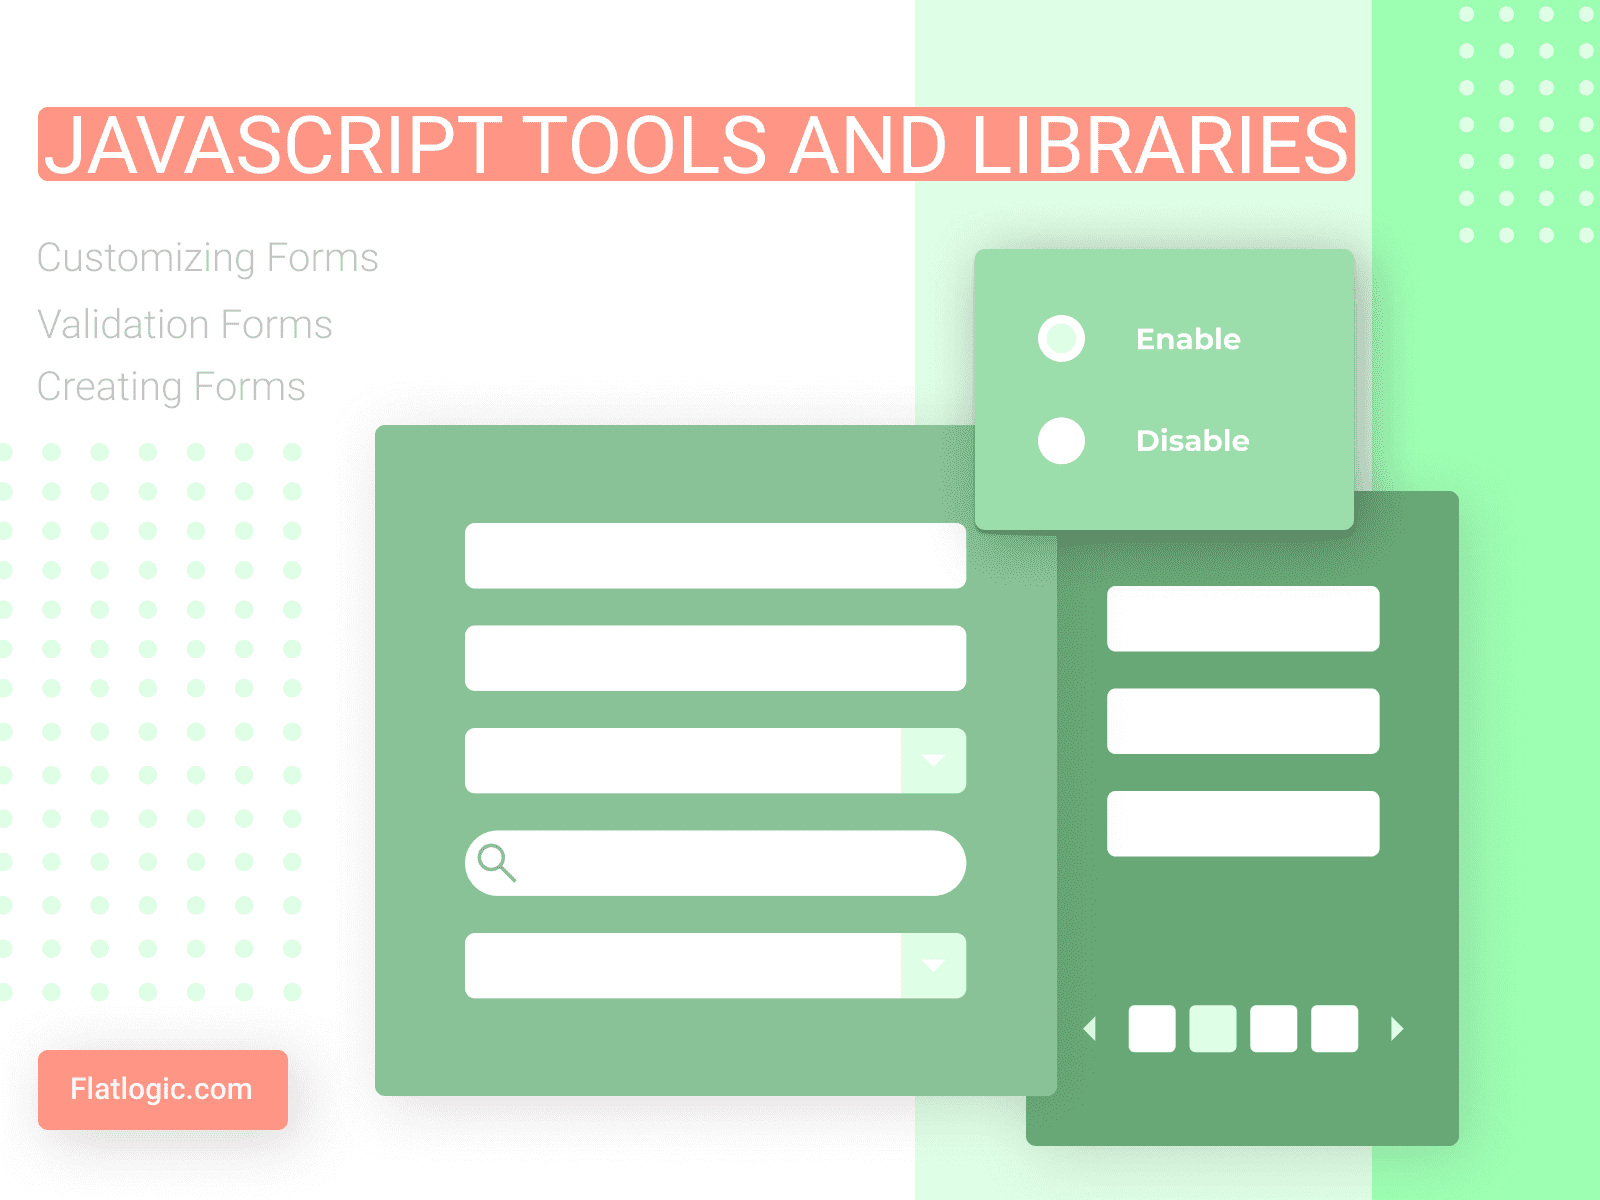 Javascript Tools and Libraries for Creating, Customizing and Validation Forms